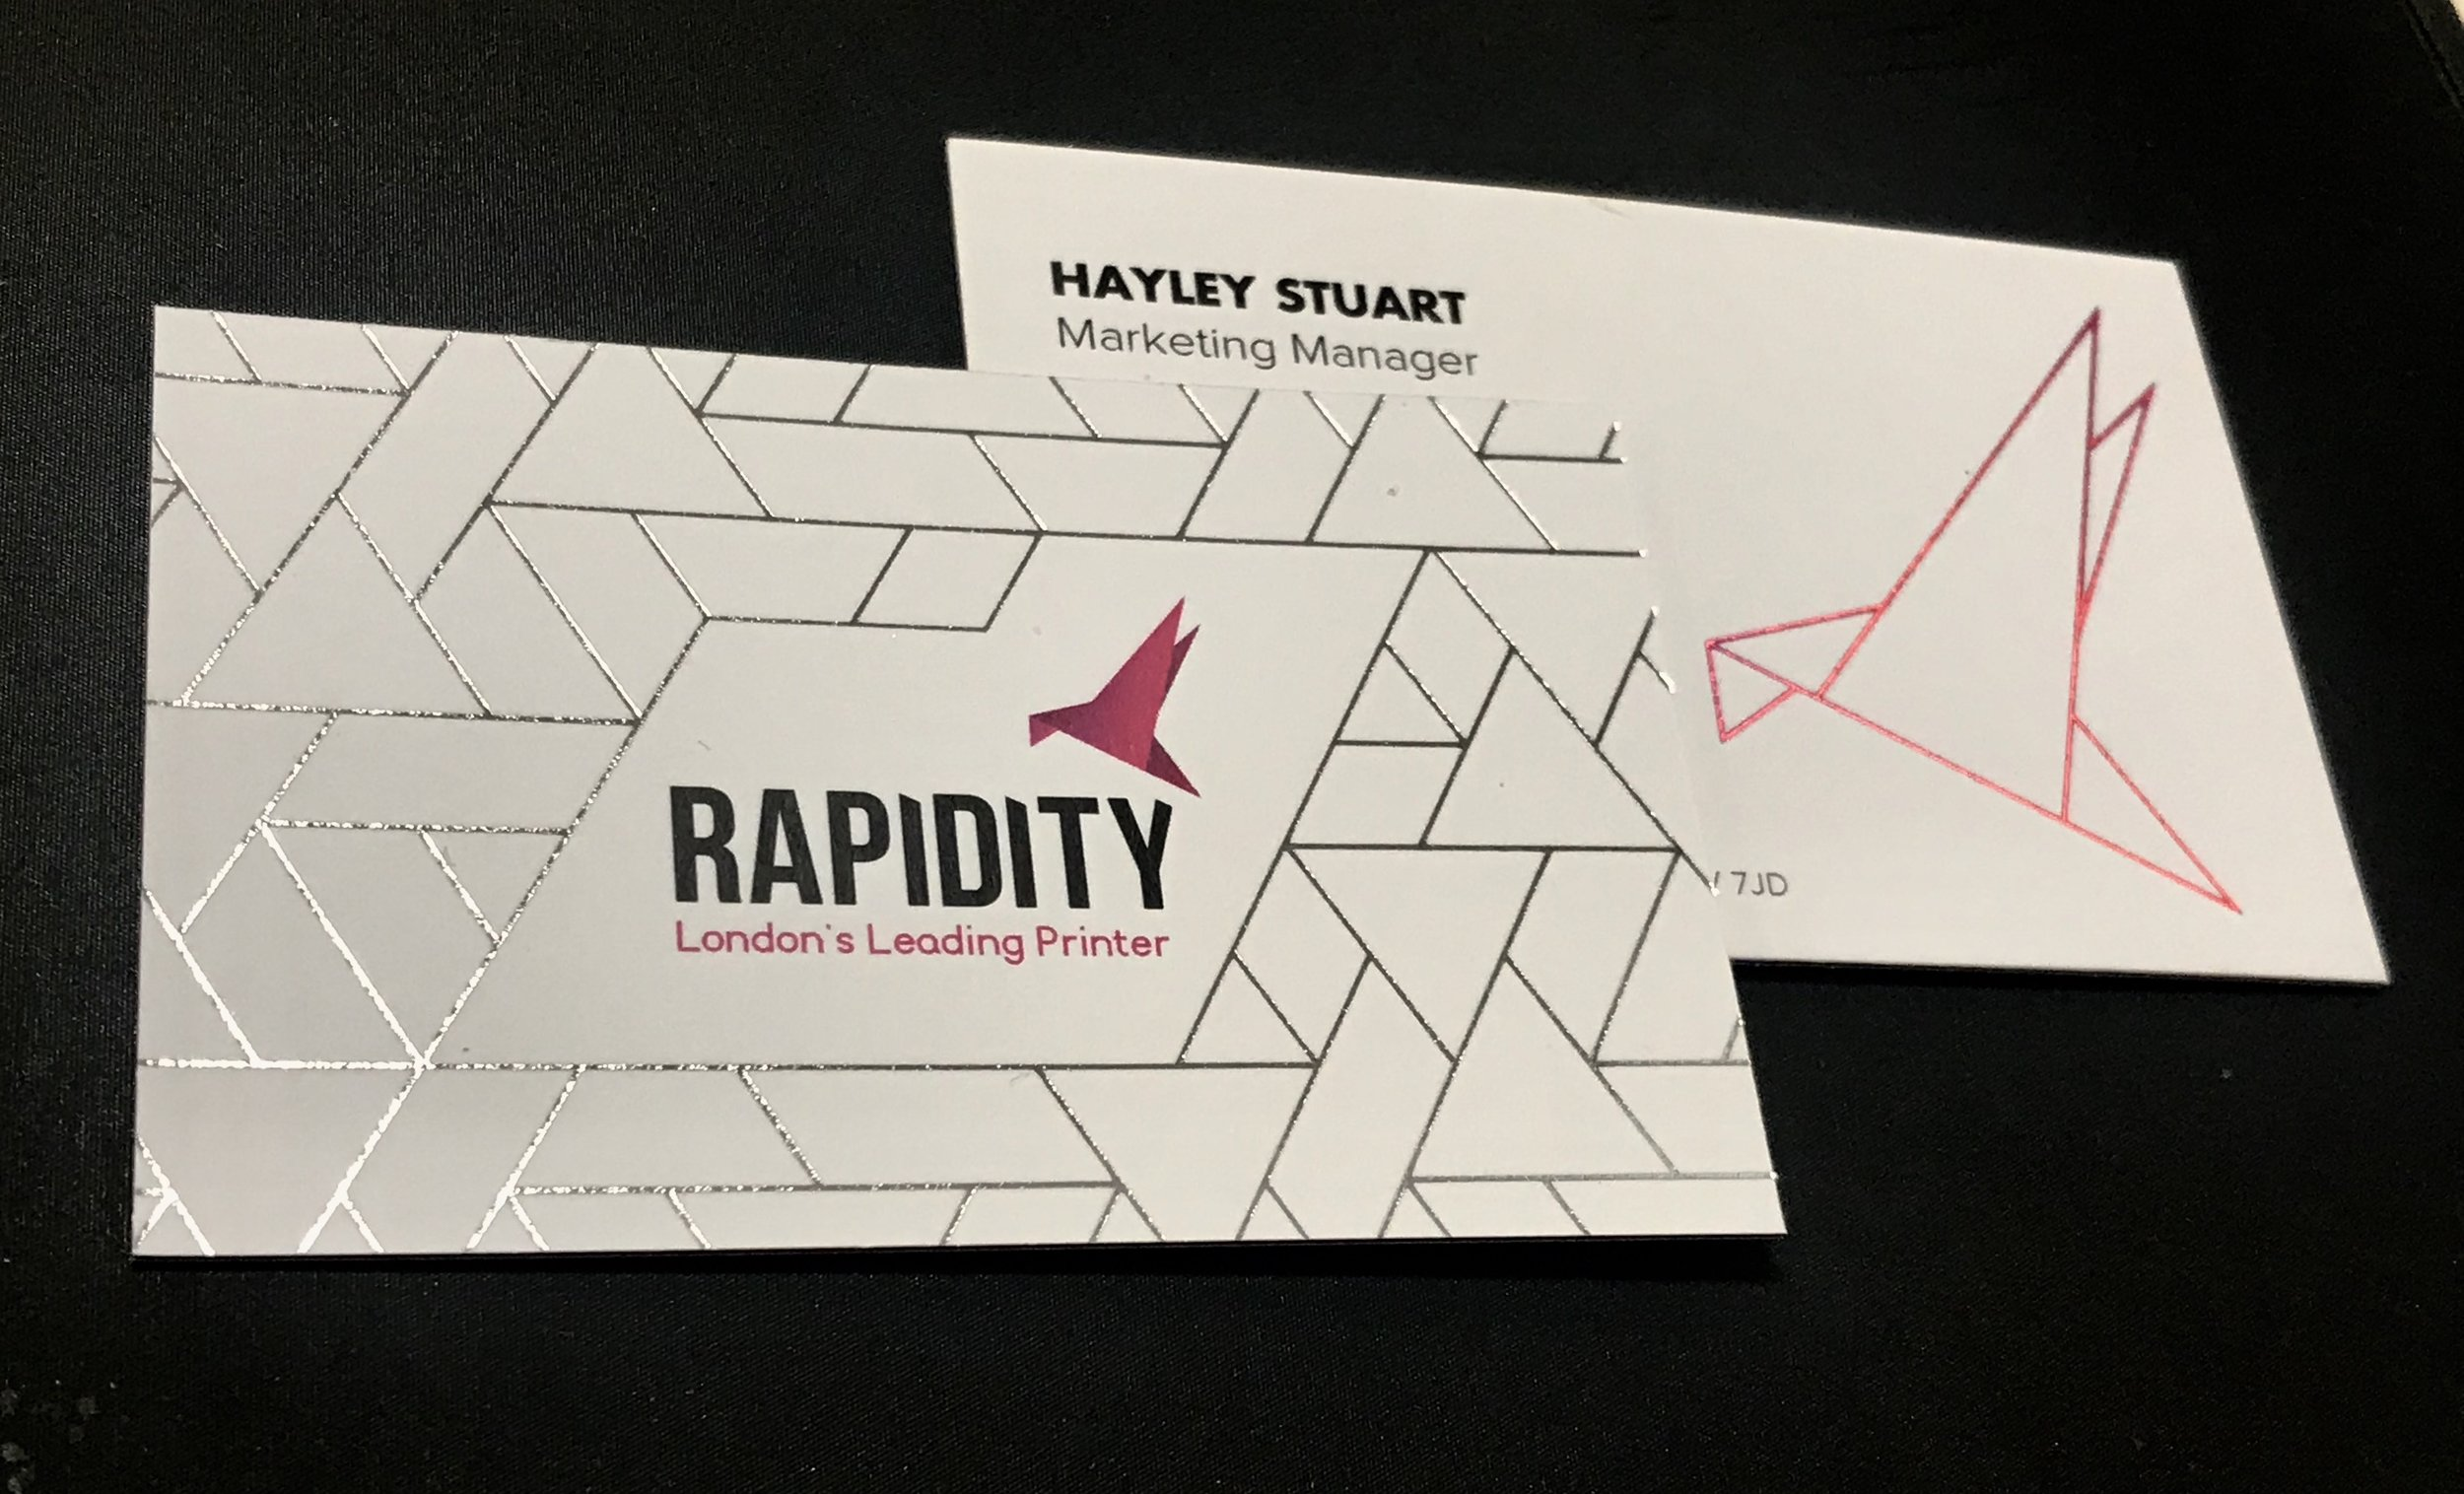 Make Your Business Cards More Memorable - 13th August 2019As the leading printer of business cards for reputable corporations across the capital, we know a good business card when we see one…